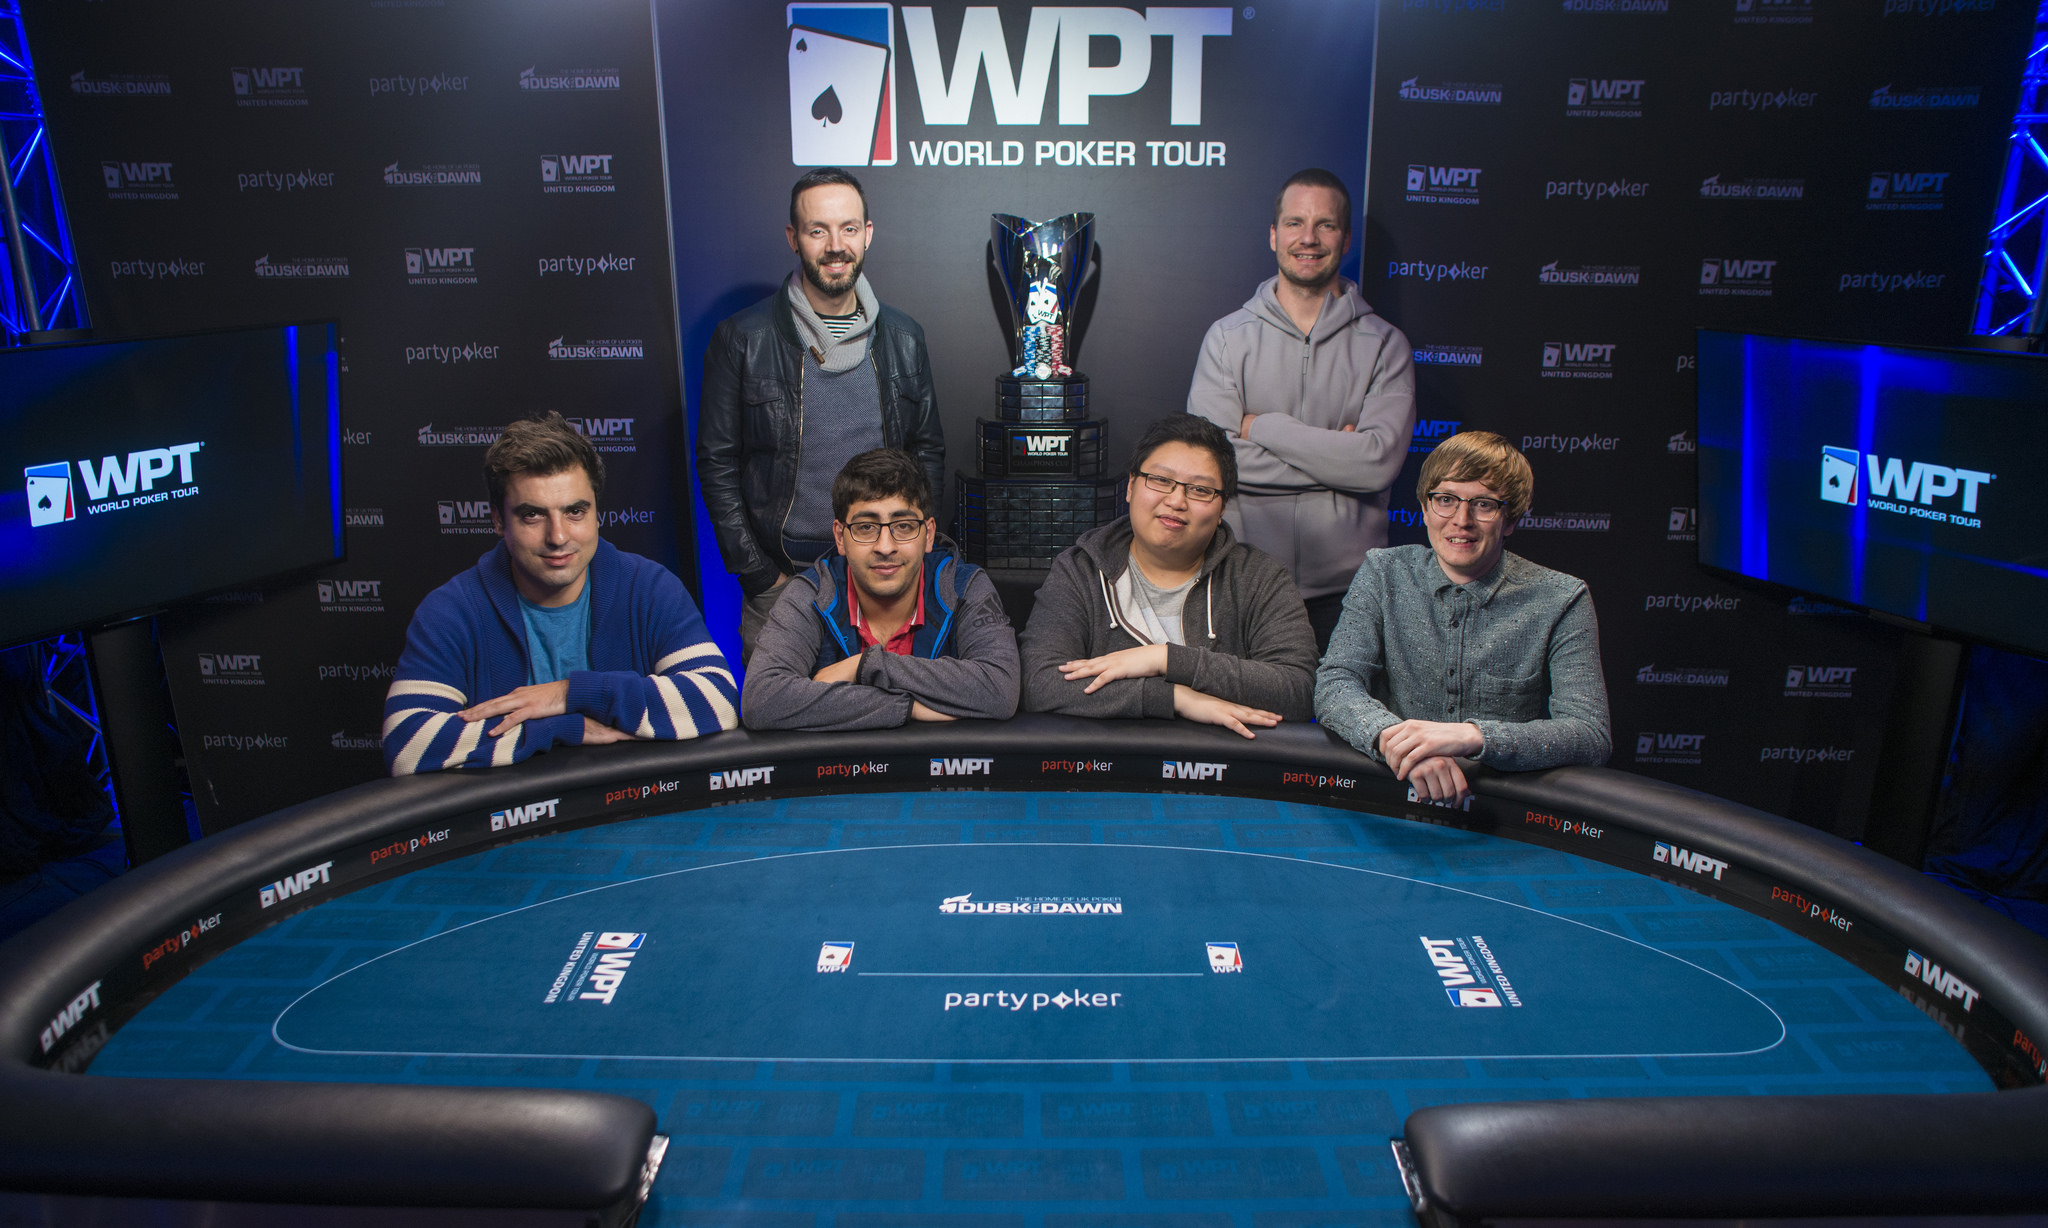 2016 Partypoker Wpt Uk Main Event Day 3 Final Table